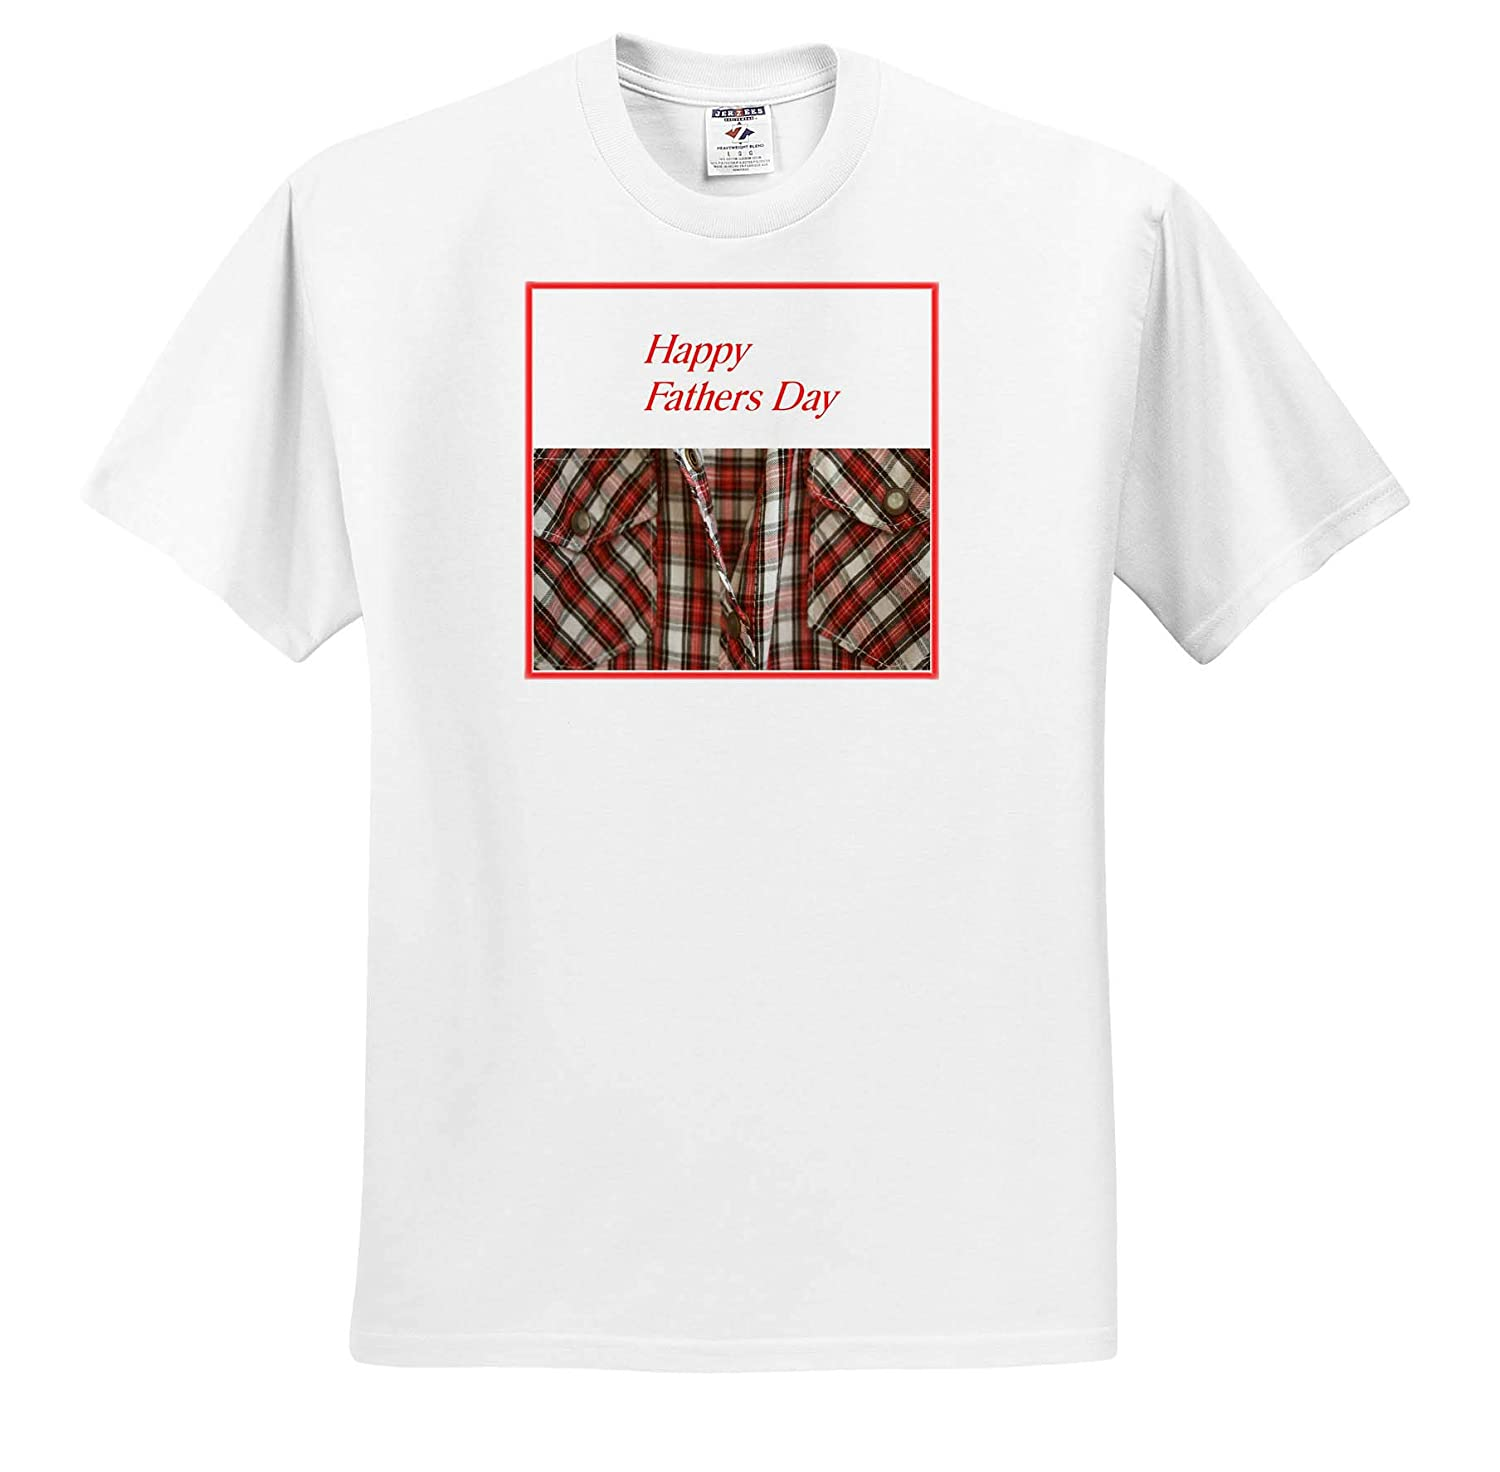 3dRose Lens Art by Florene Fathers Day Adult T-Shirt XL Image of Happy Fathers Day On Red Plaid Shirt ts/_312623